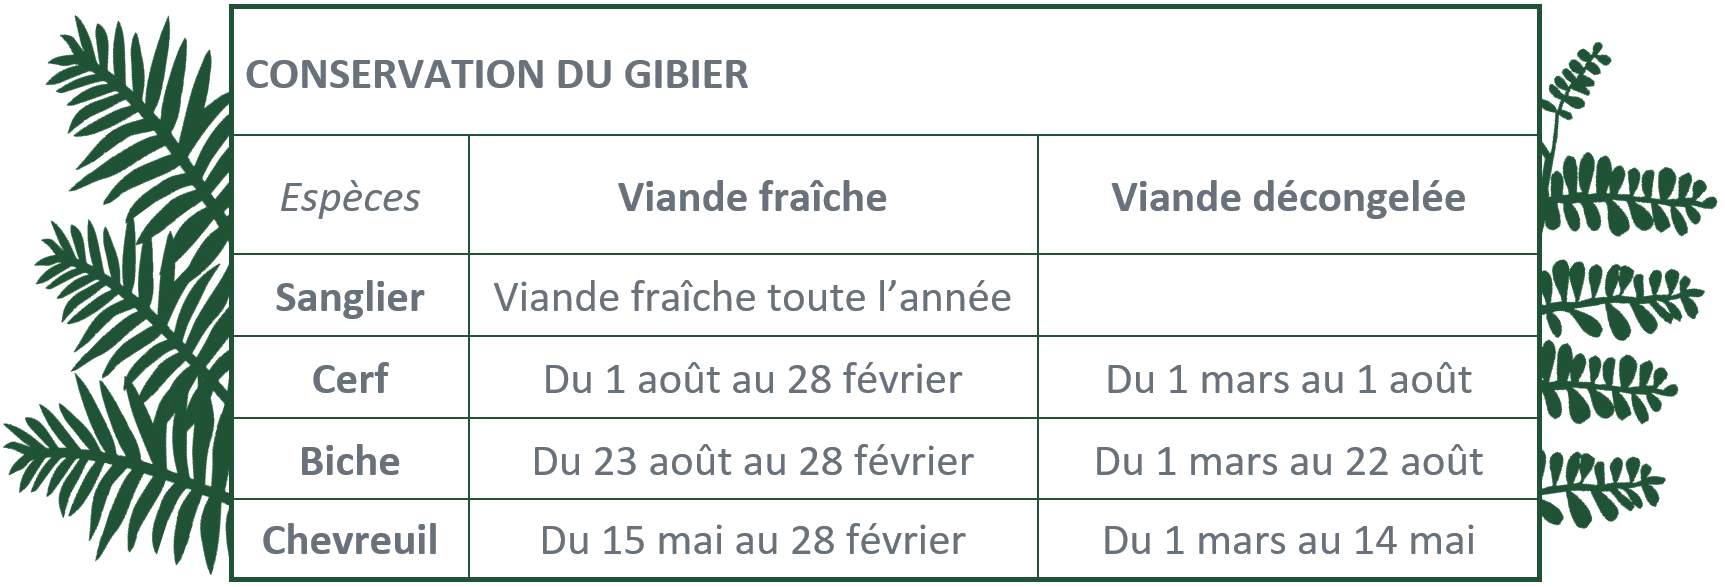 conservation gibier